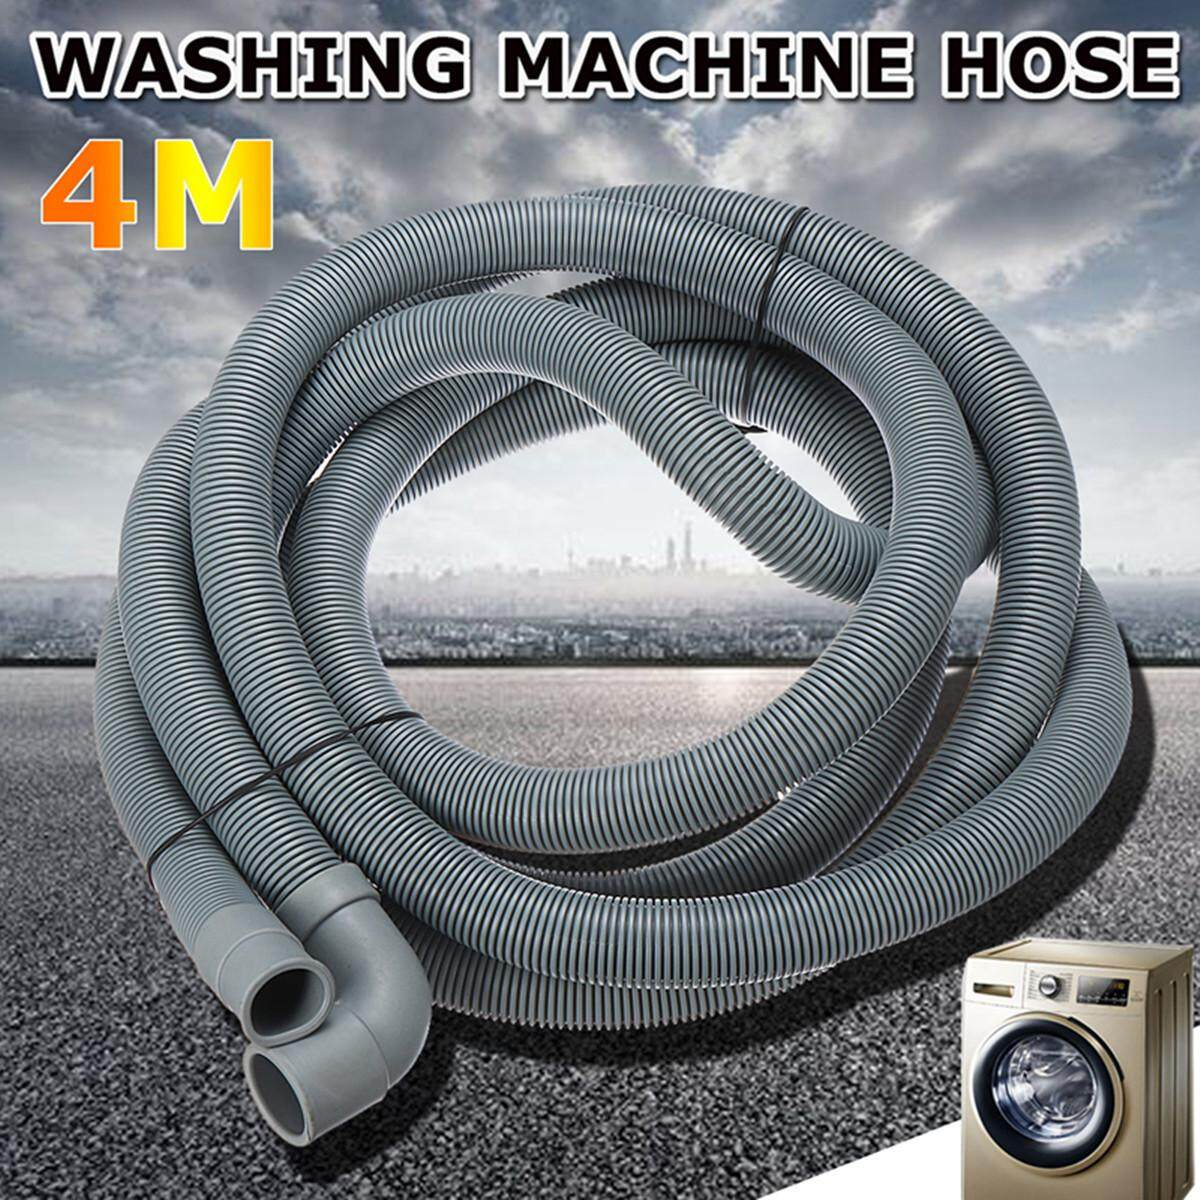 4m Washing Machine Dishwasher Outlet Drain Hose By Audew.